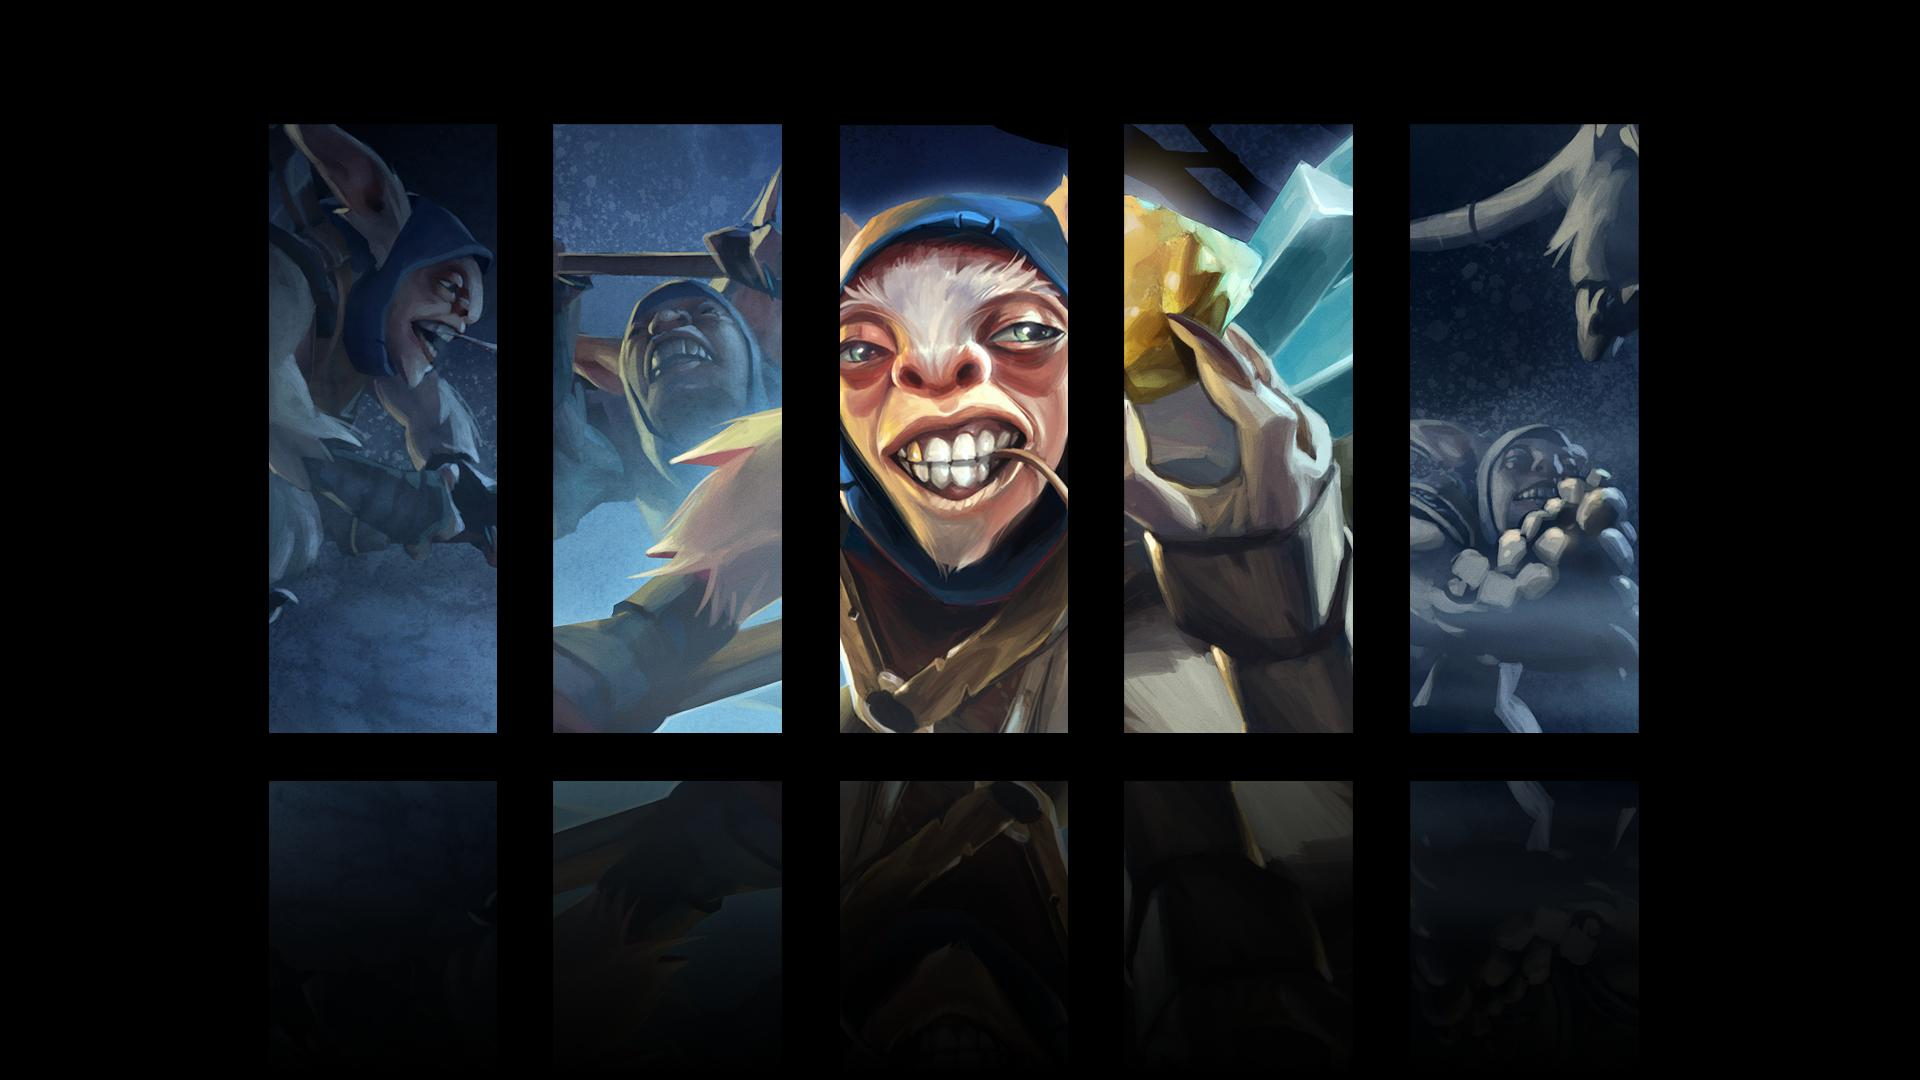 Dota2 : Meepo Wallpapers hd